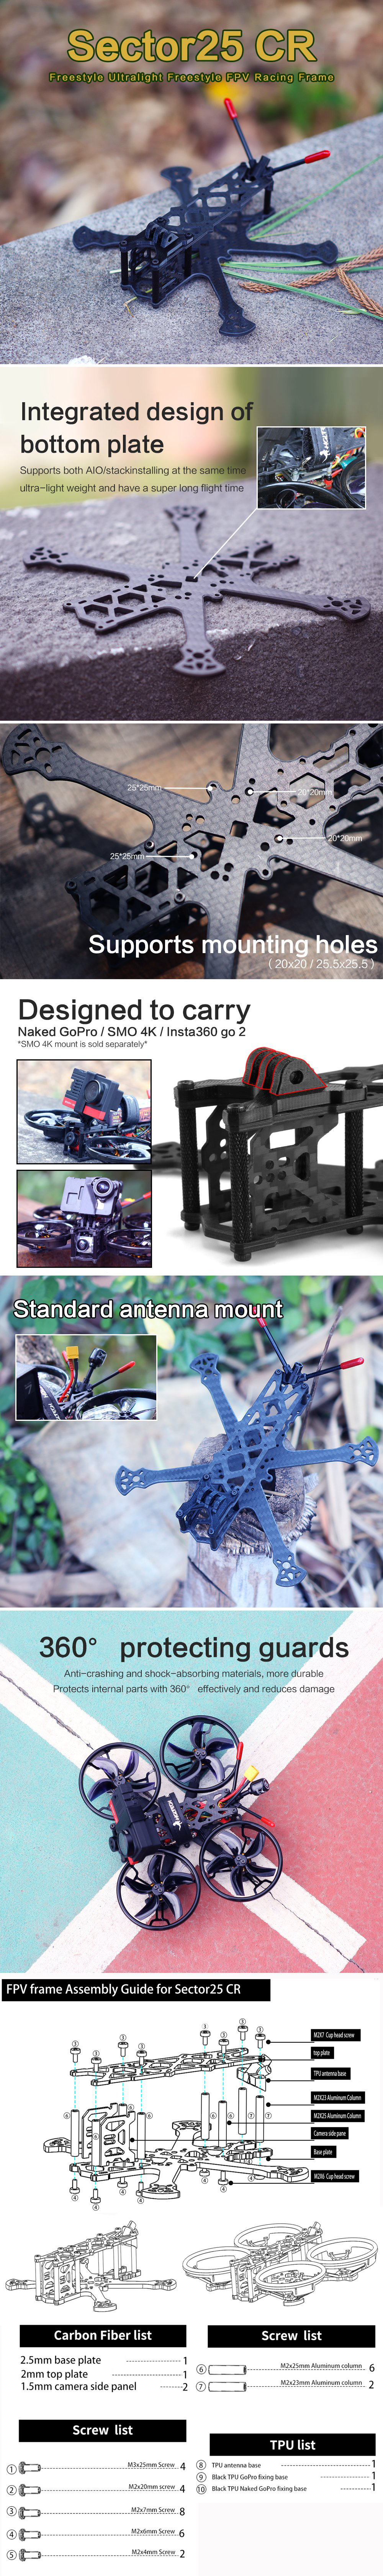 HGLRC Sector25CR 2.5-inch Freestyle FPV Frame Ultralight Racing Drone - Black